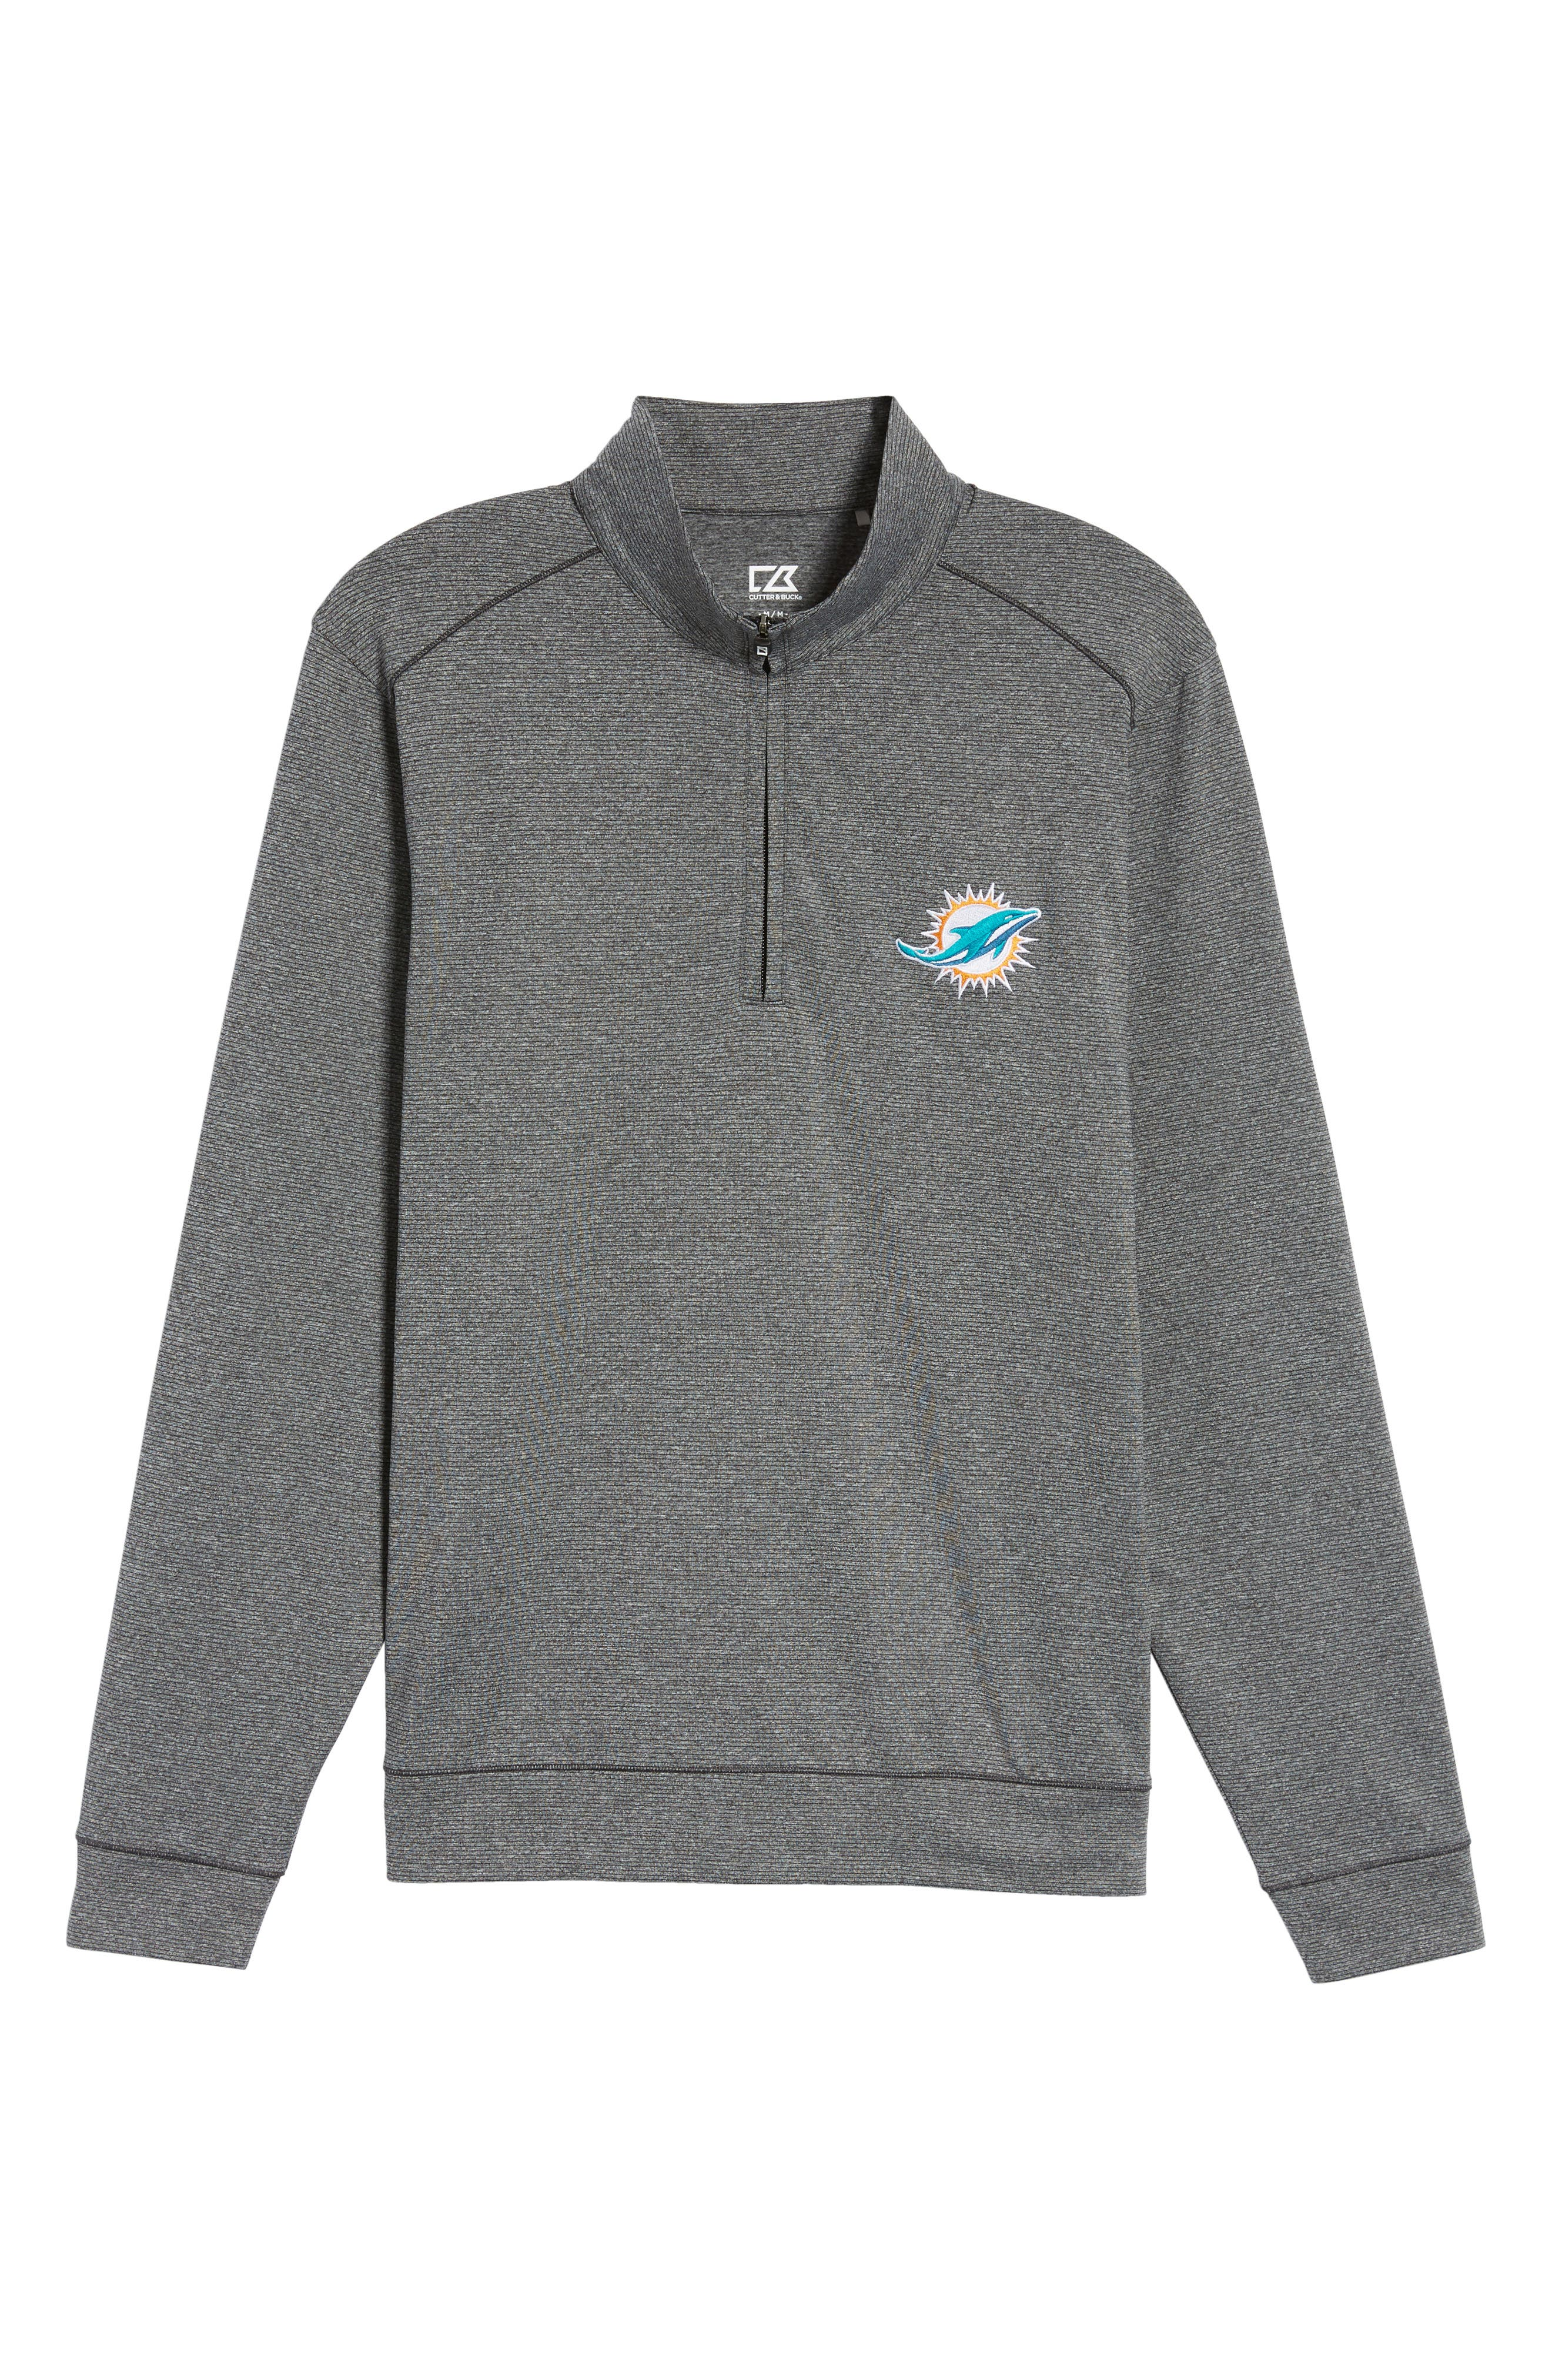 Cutter & Butter Shoreline - Miami Dolphins Half Zip Pullover,                             Alternate thumbnail 6, color,                             Charcoal Heather